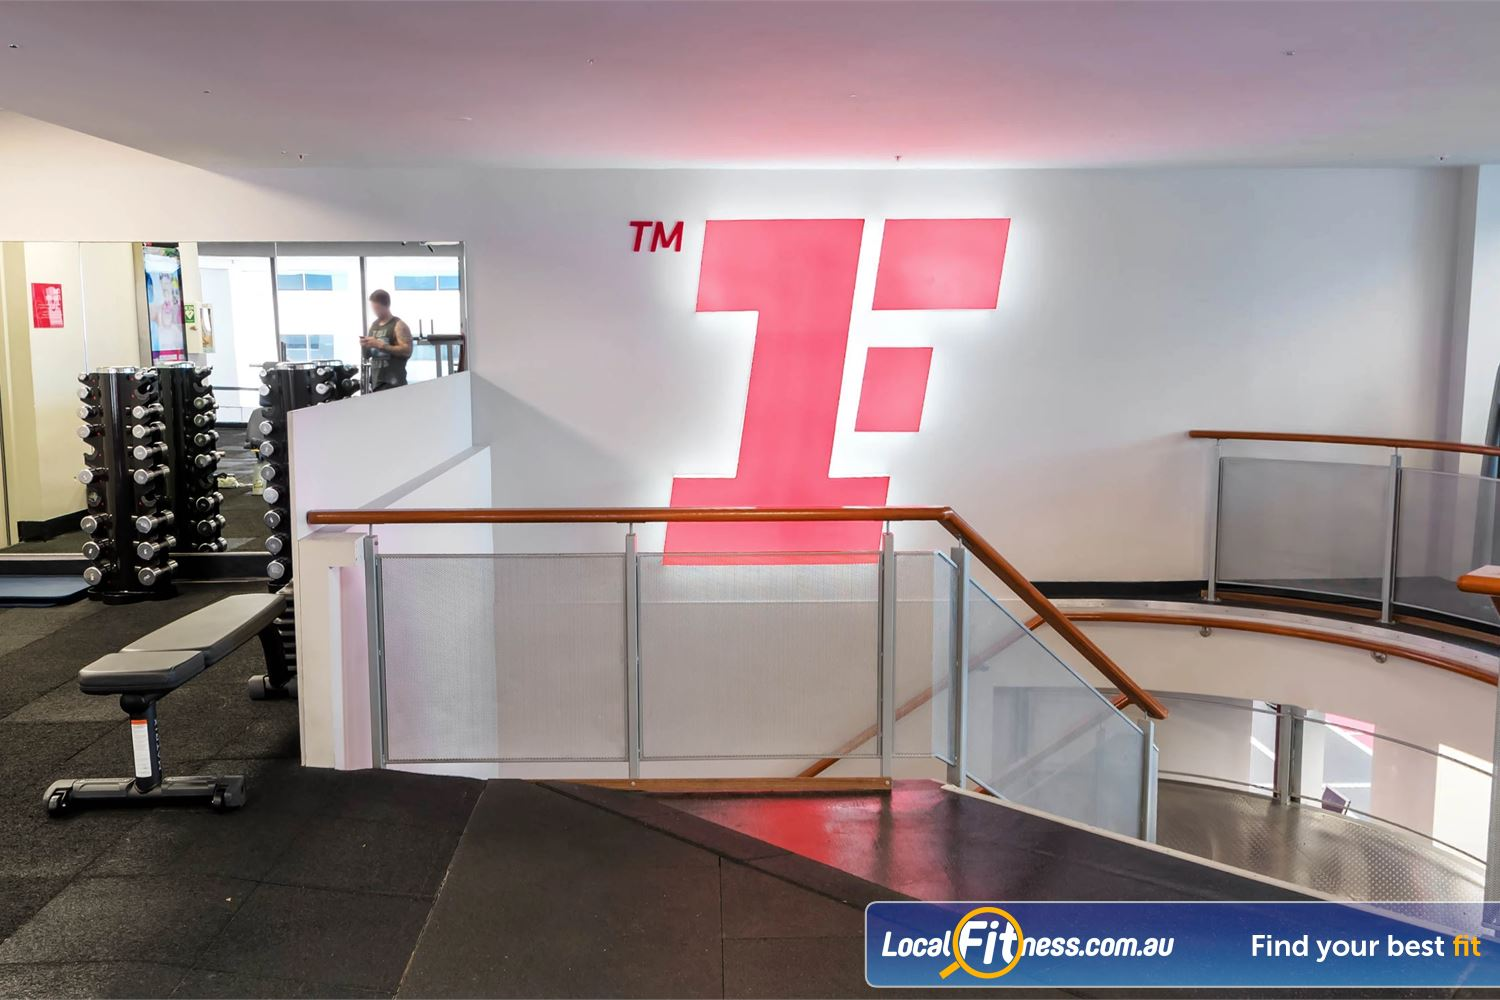 Fitness First Elizabeth Plaza Near Kirribilli Our North Sydney gym is spread over multiple floors.